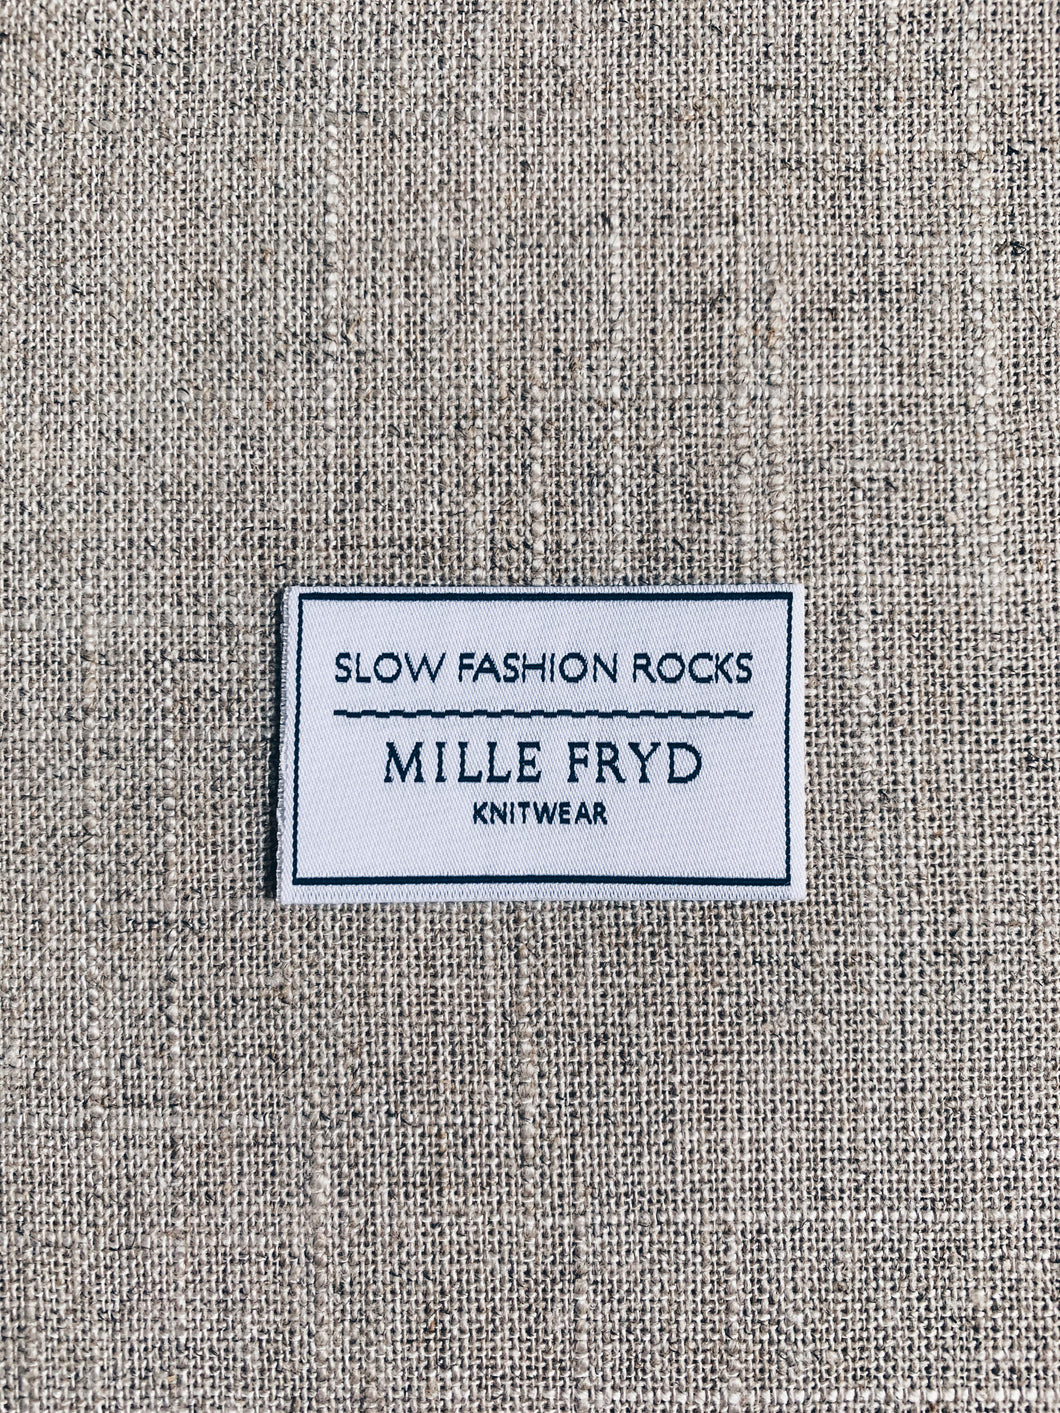 Slow Fashion Rocks - label